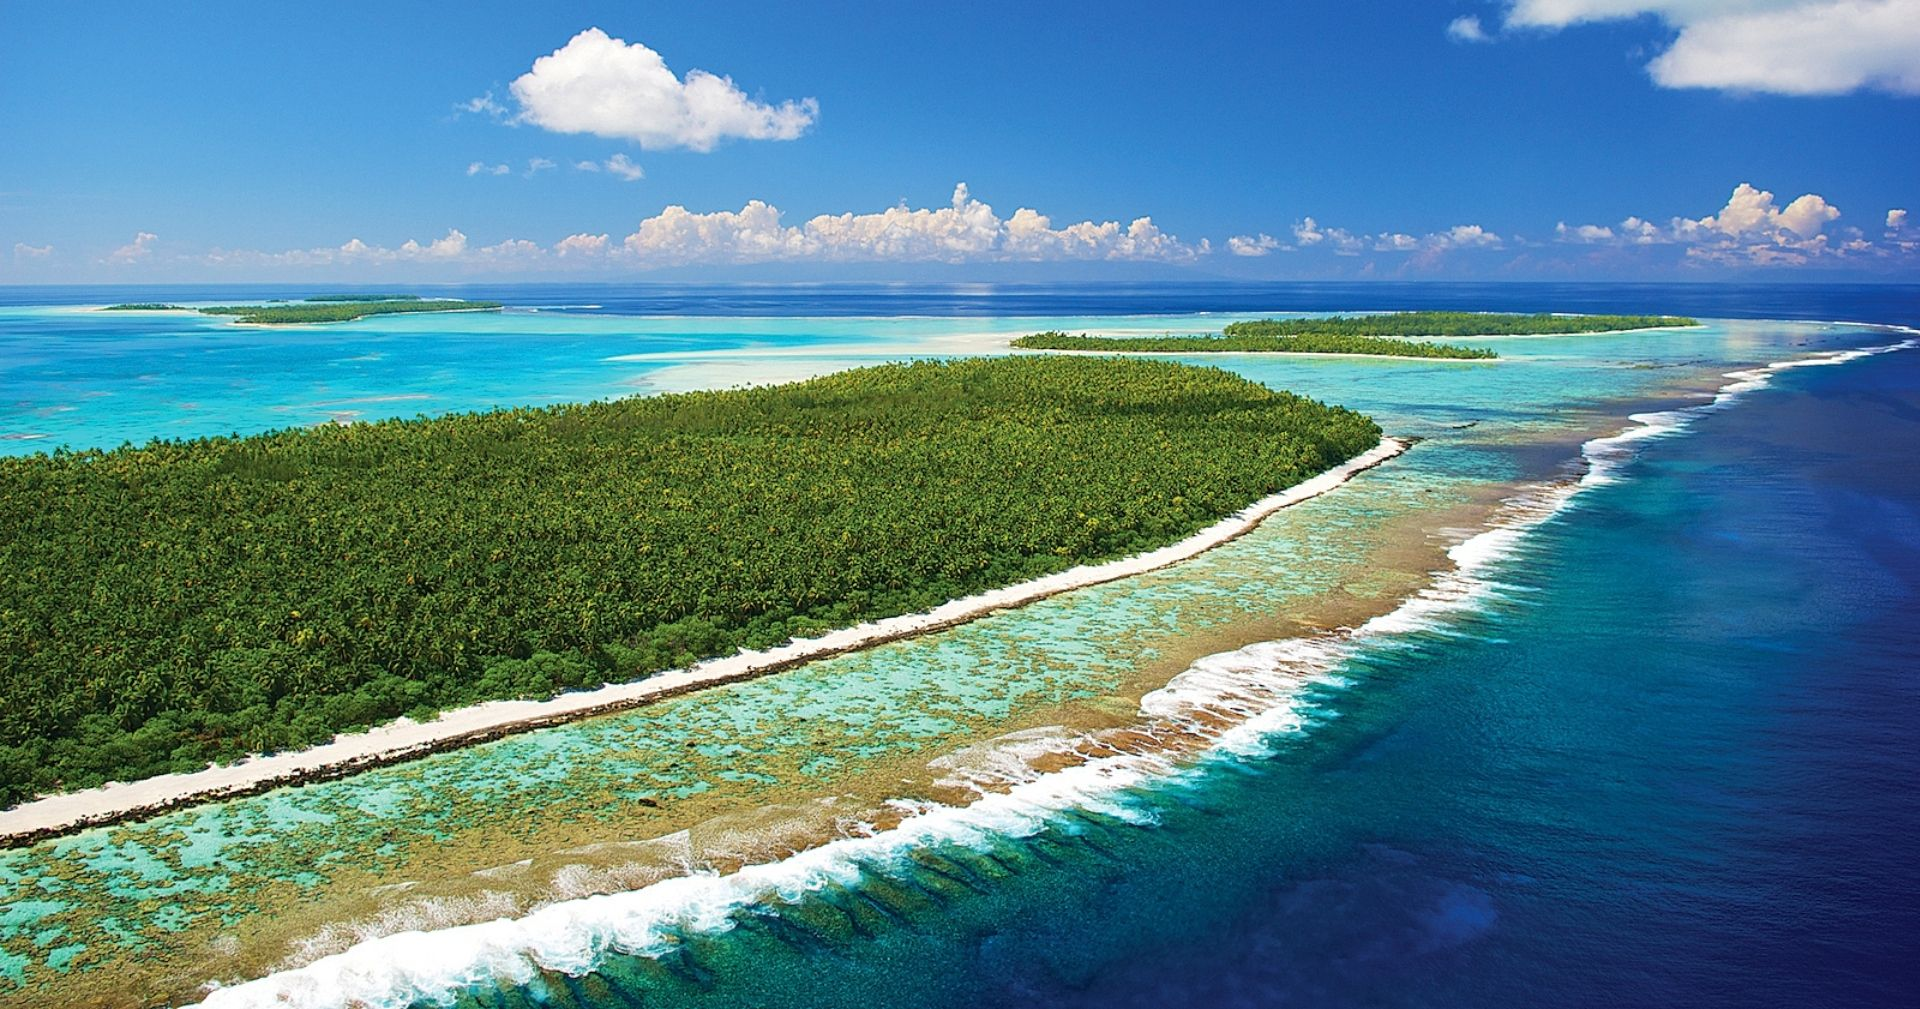 Coral reefs like no other